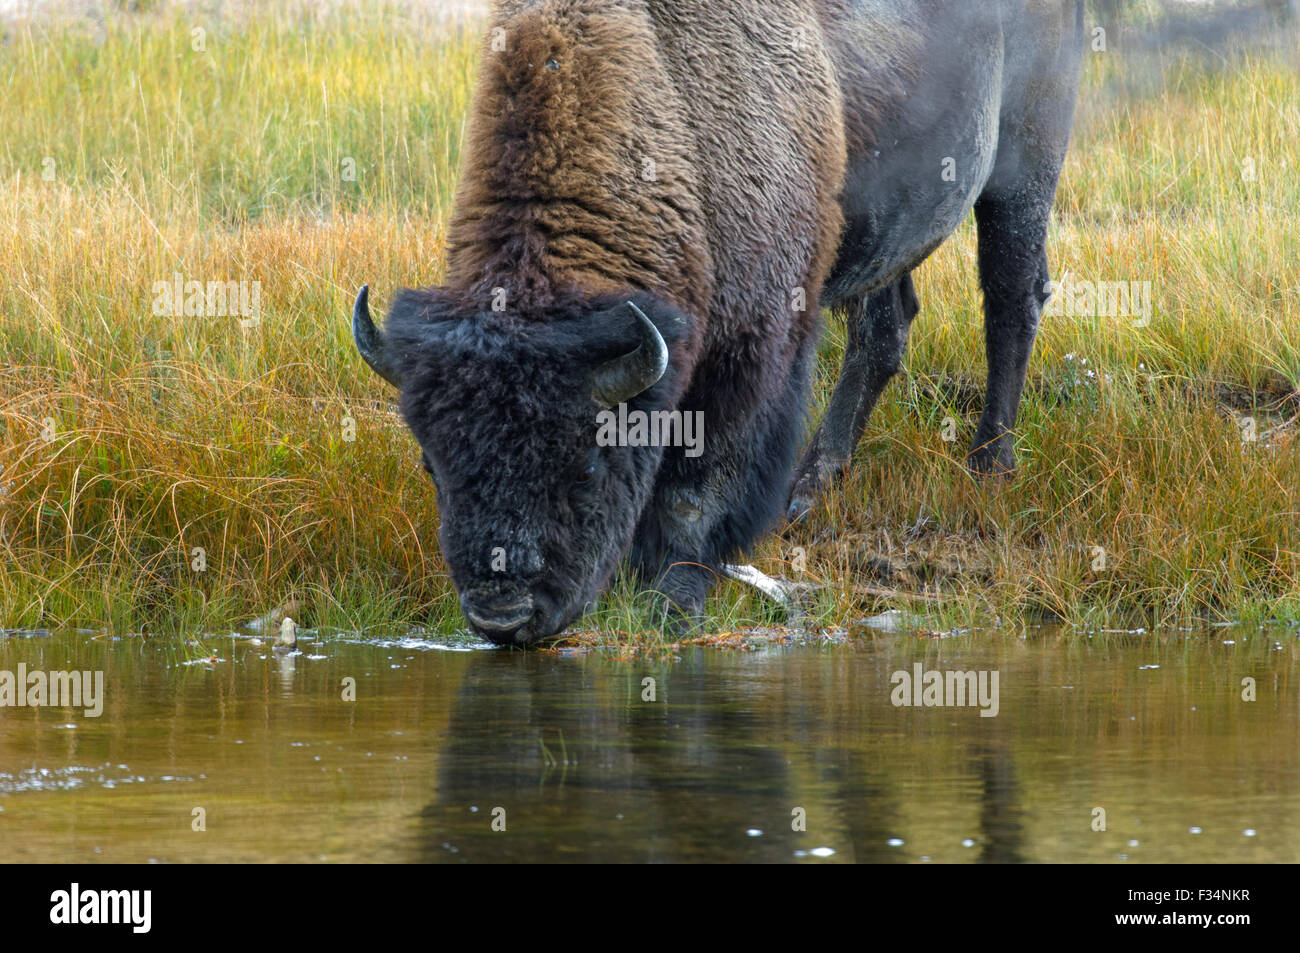 American Bison (Bison bison) drinking from stream, Yellowstone National Park, Wyoming, USA er Llewellyn - Stock Image